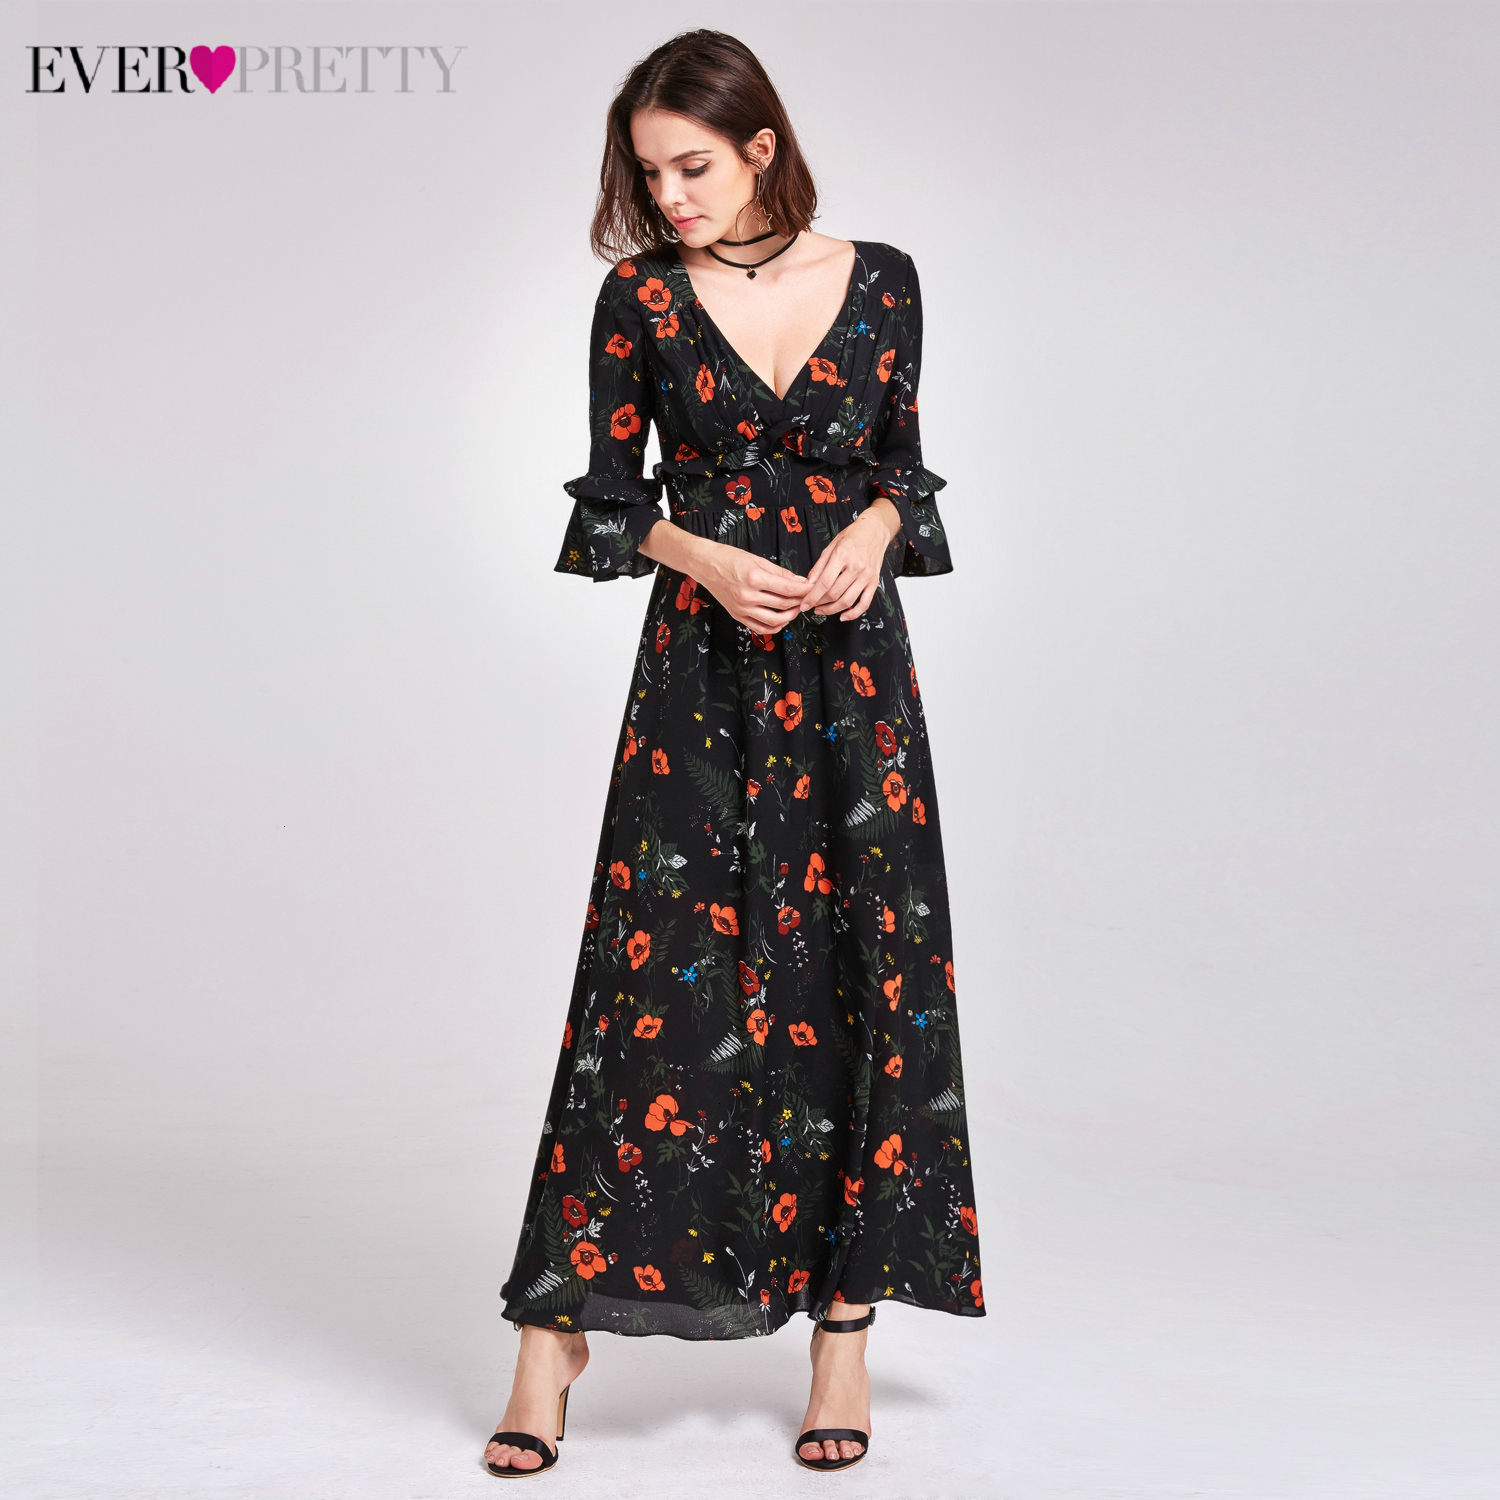 Sexy Floral Printed Prom Dresses Ever Pretty A-Line V-Neck 3/4 Sleeve Black Chiffon Formal Party Gowns Vestidos De Festa 2019